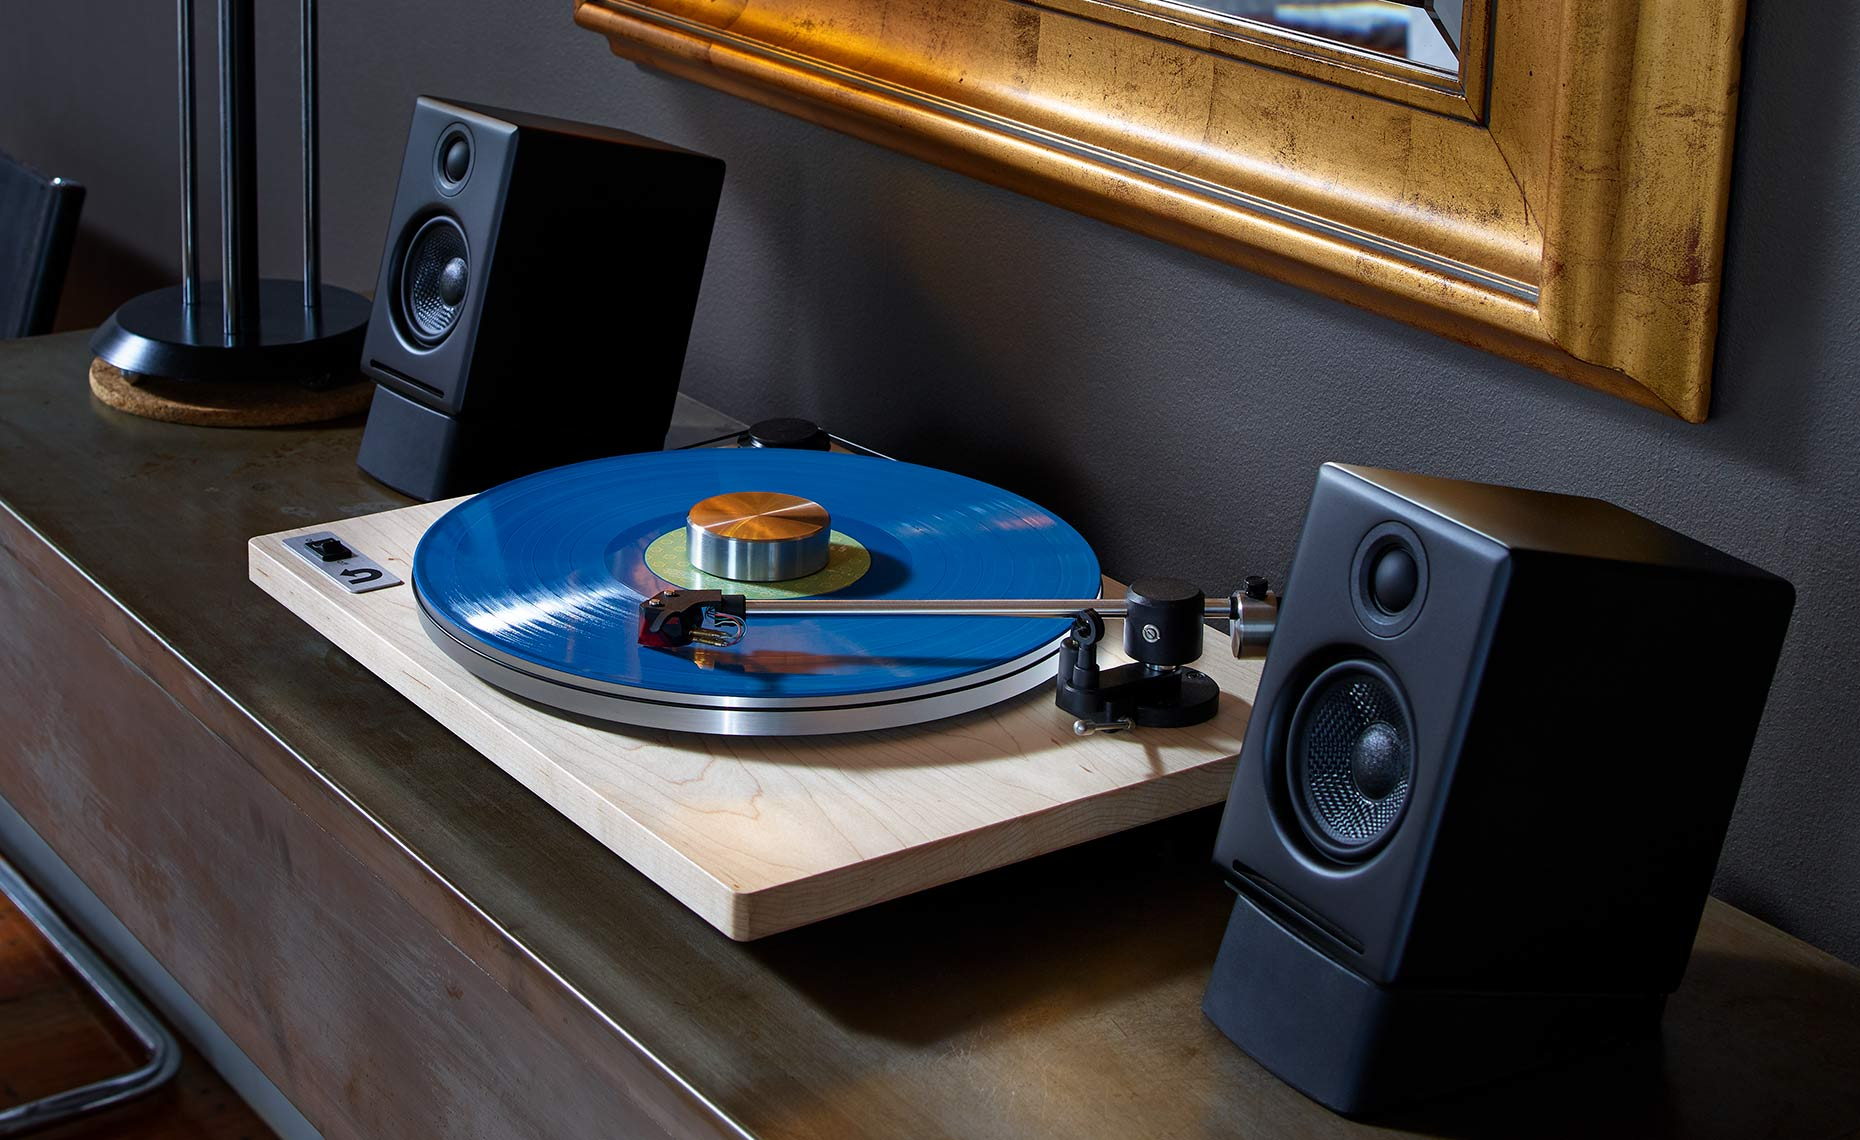 Audio Turntable in Home Gray-Wall-with-Mirror-08_17_17_uTurn32527-F Advertising Photography